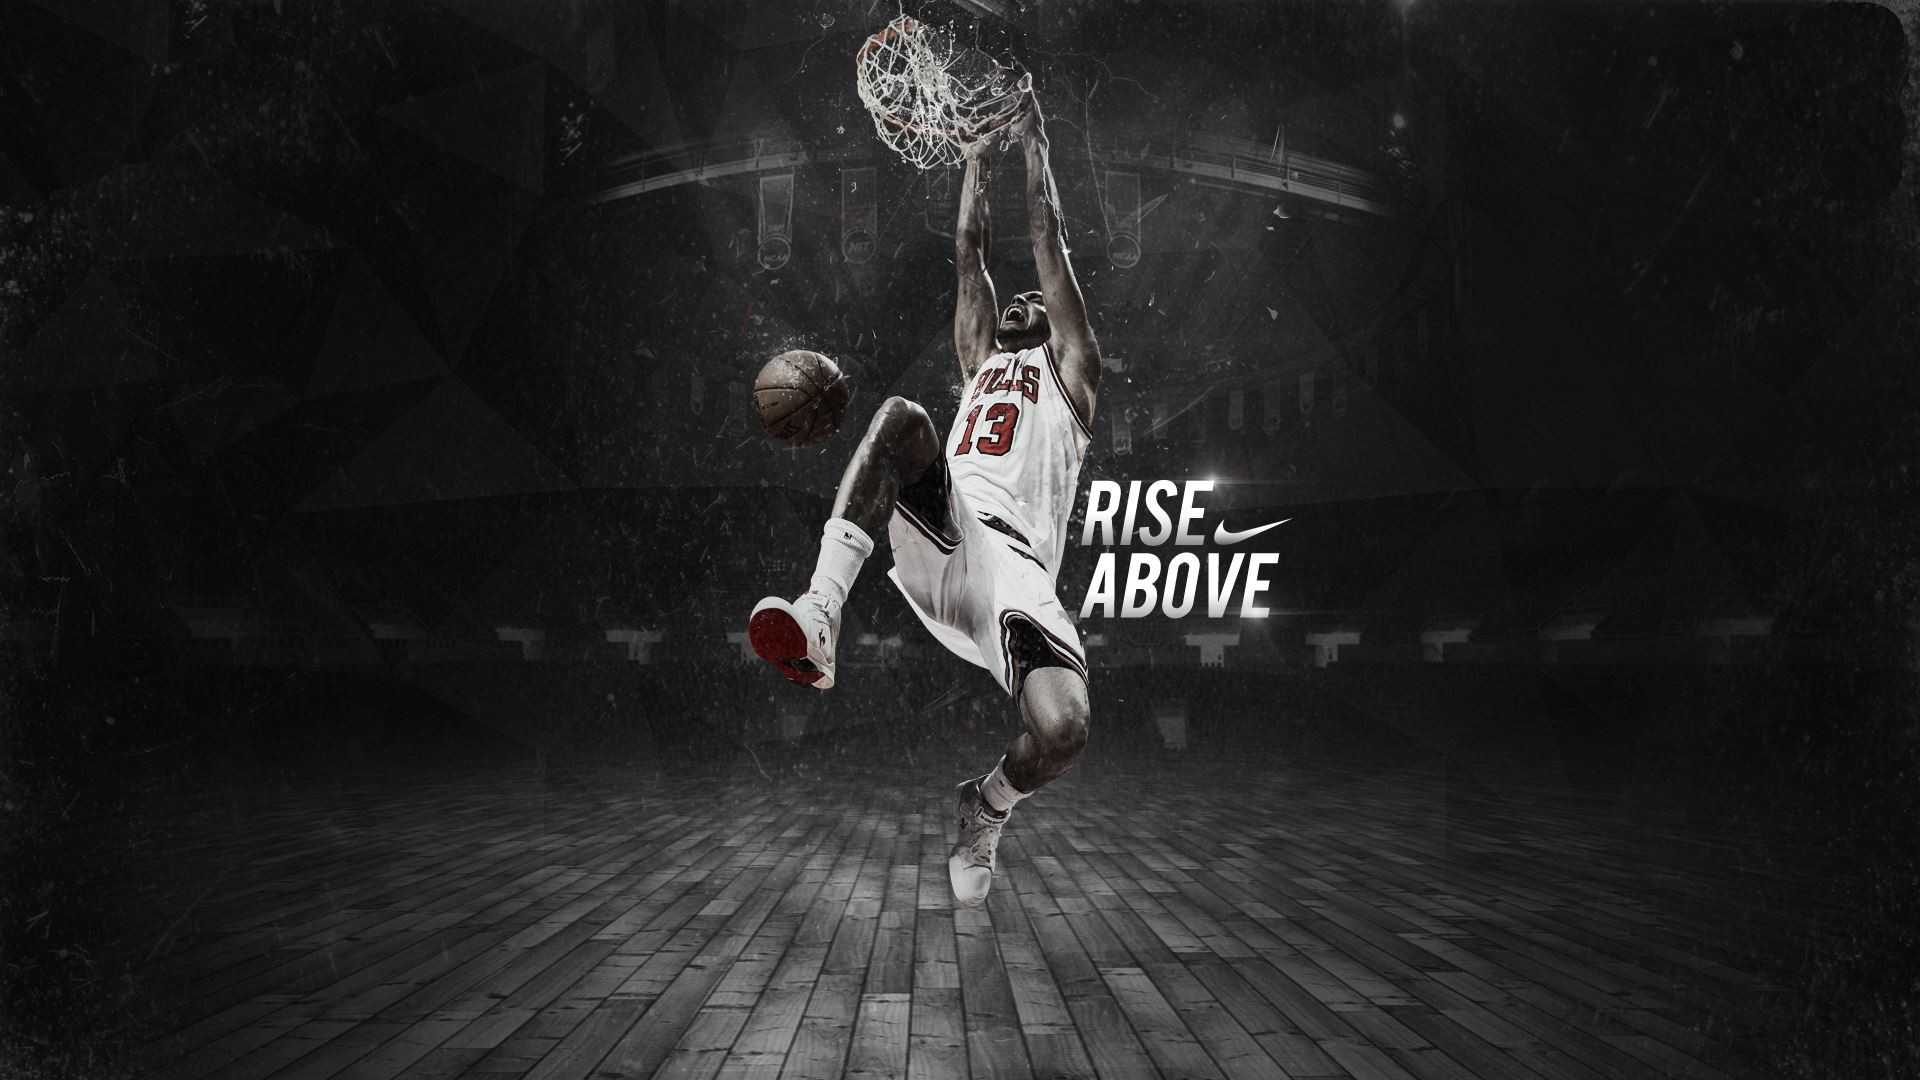 HD Wallpapers Basketball 72 Background Pictures